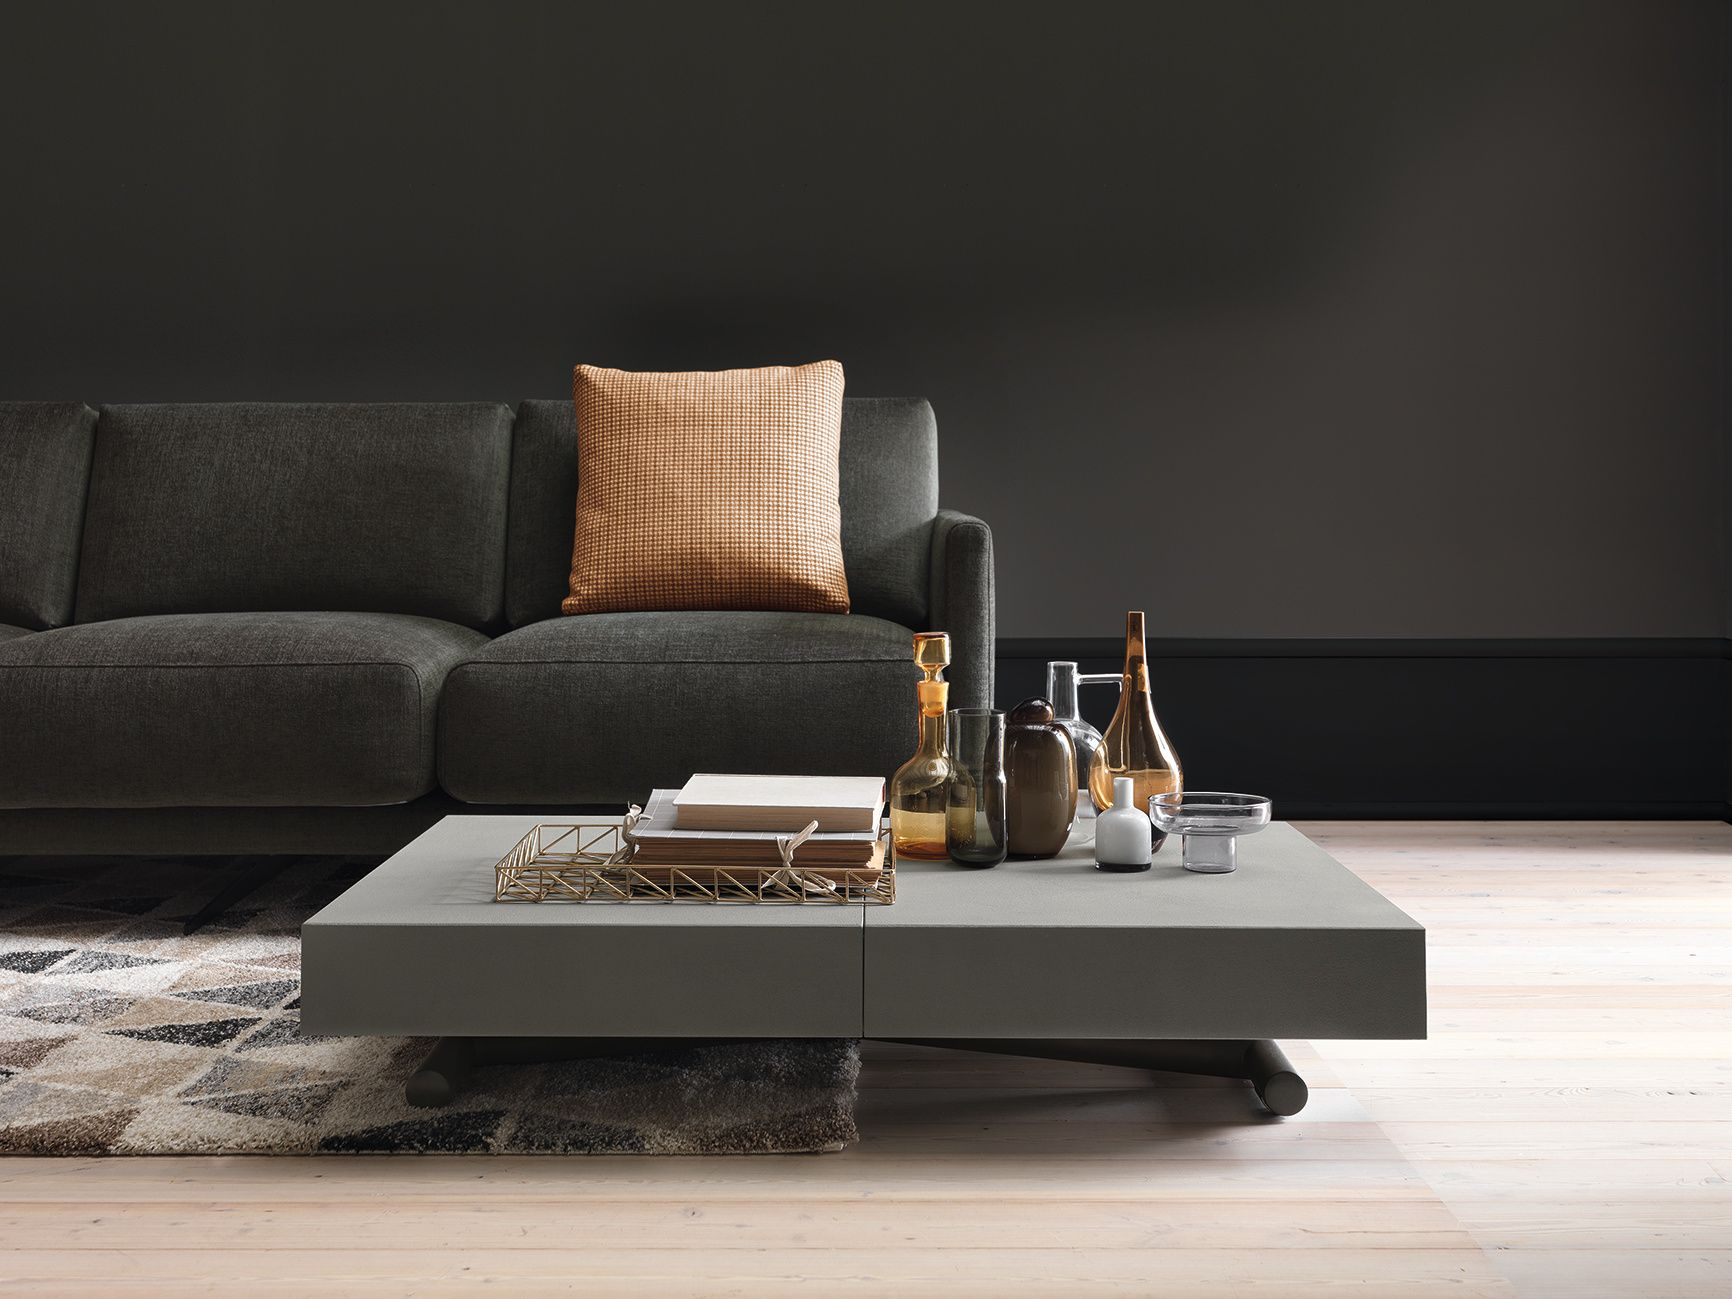 Ulisse Table 10 Pax Djcolifestyle Convertible Coffee Table